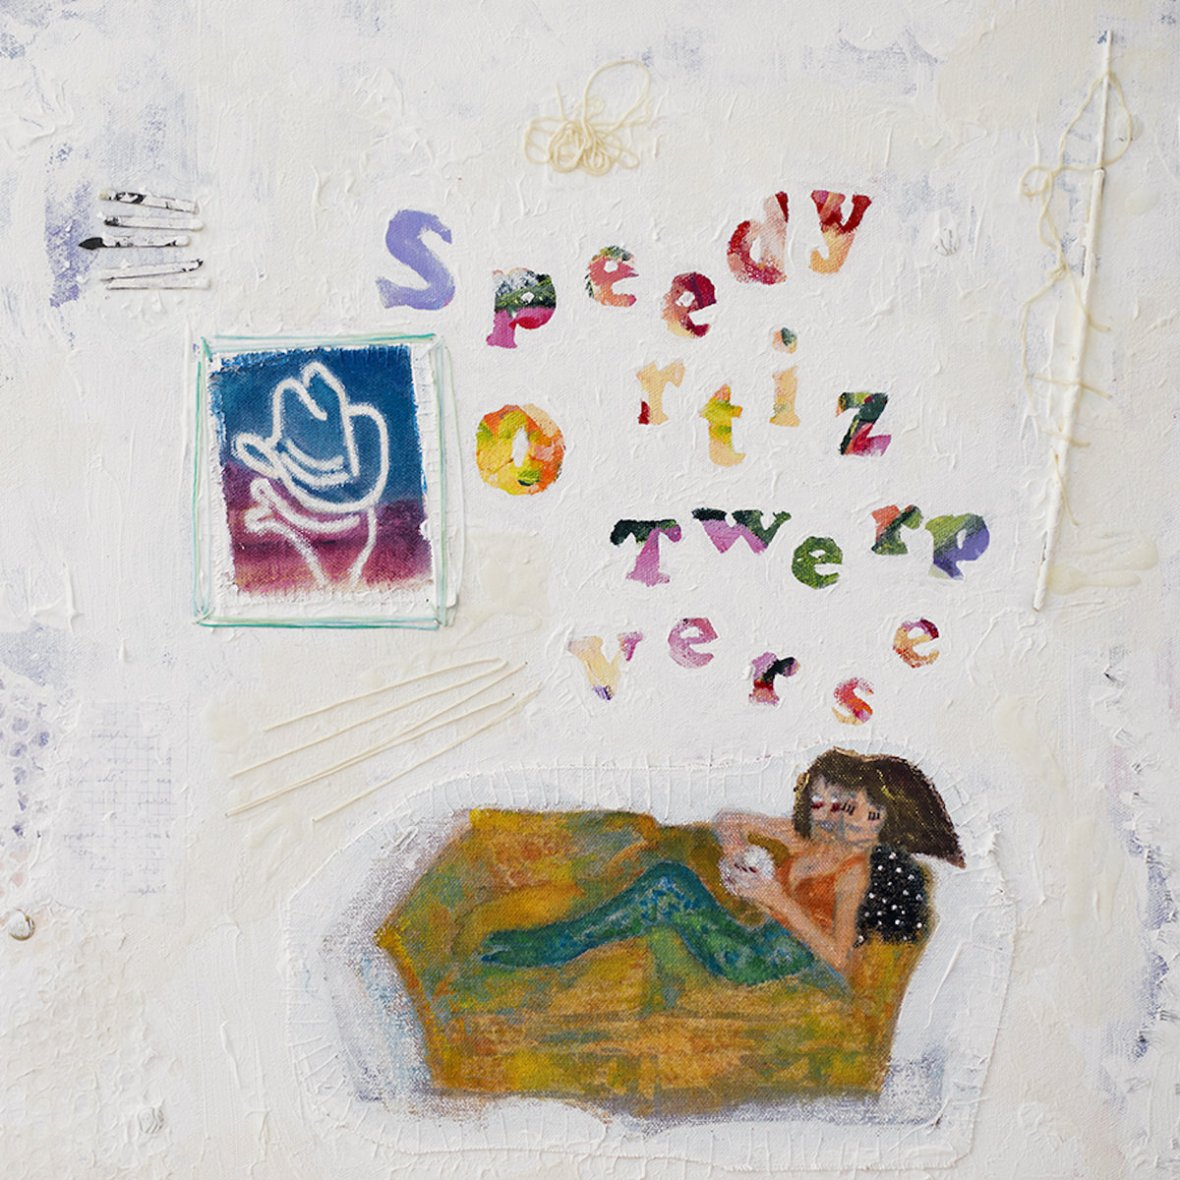 Cover art for Speedy Ortiz new album Twerp Verse